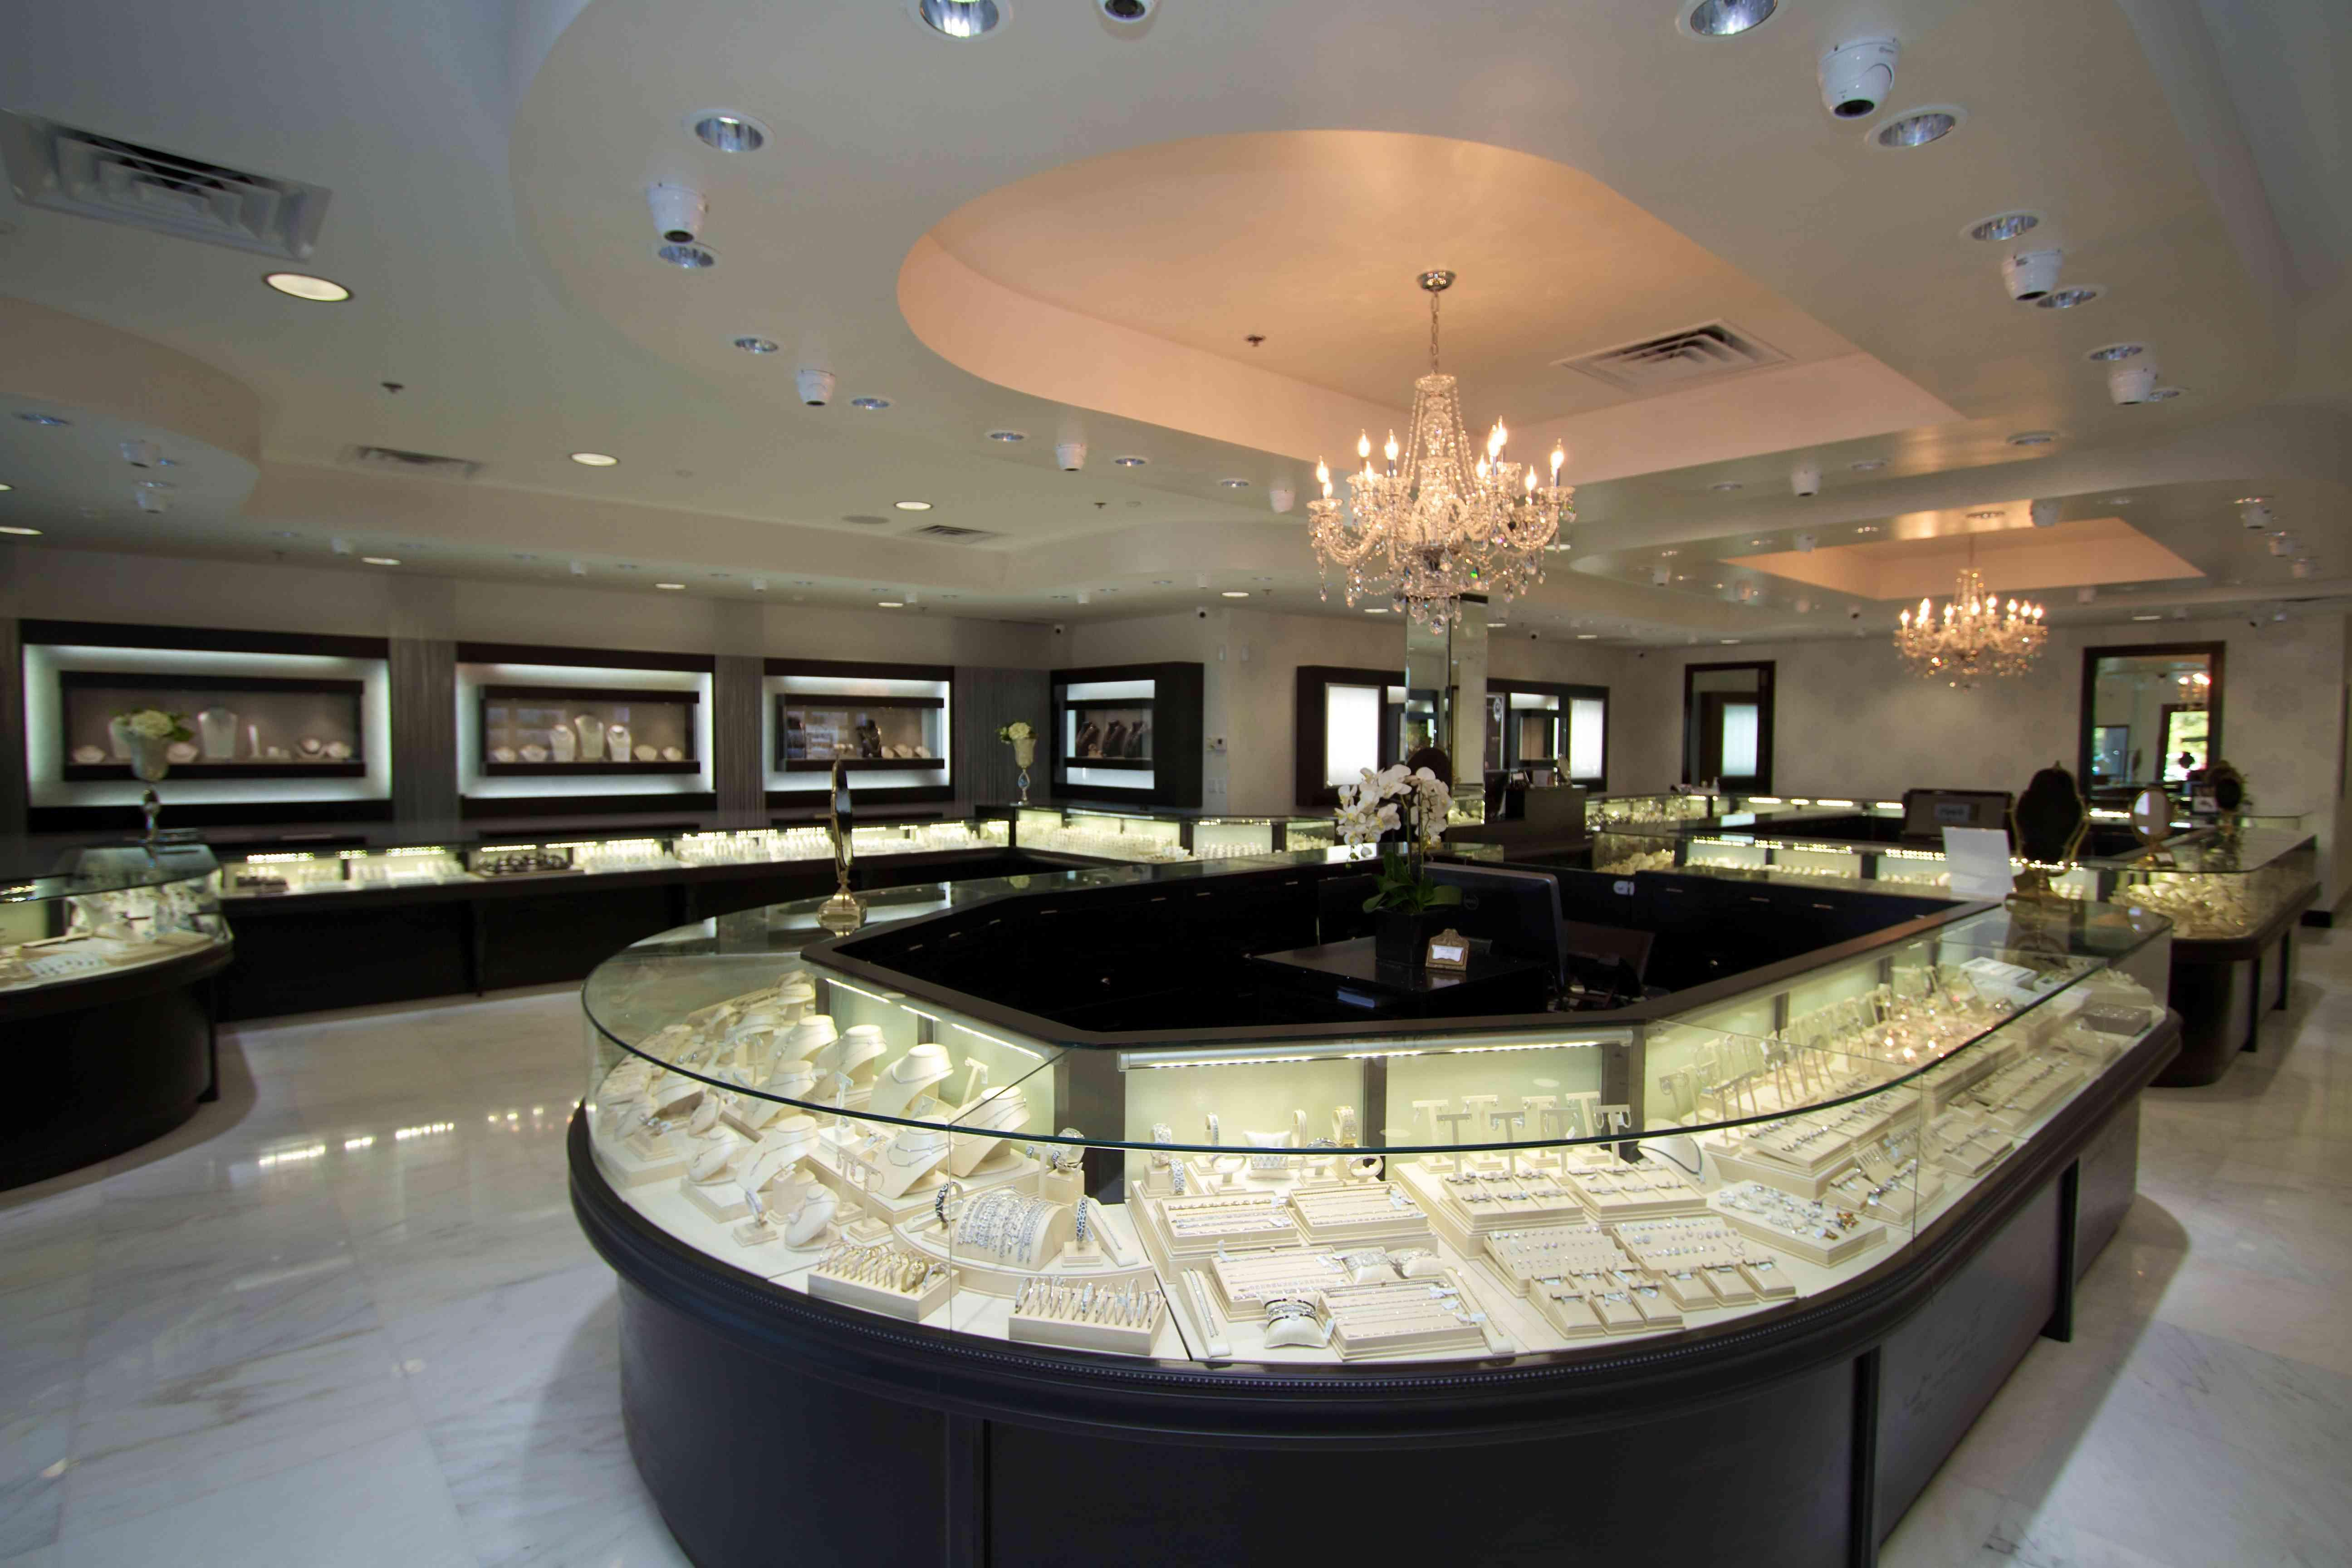 things shops iran jewellery will jewelry img miss about